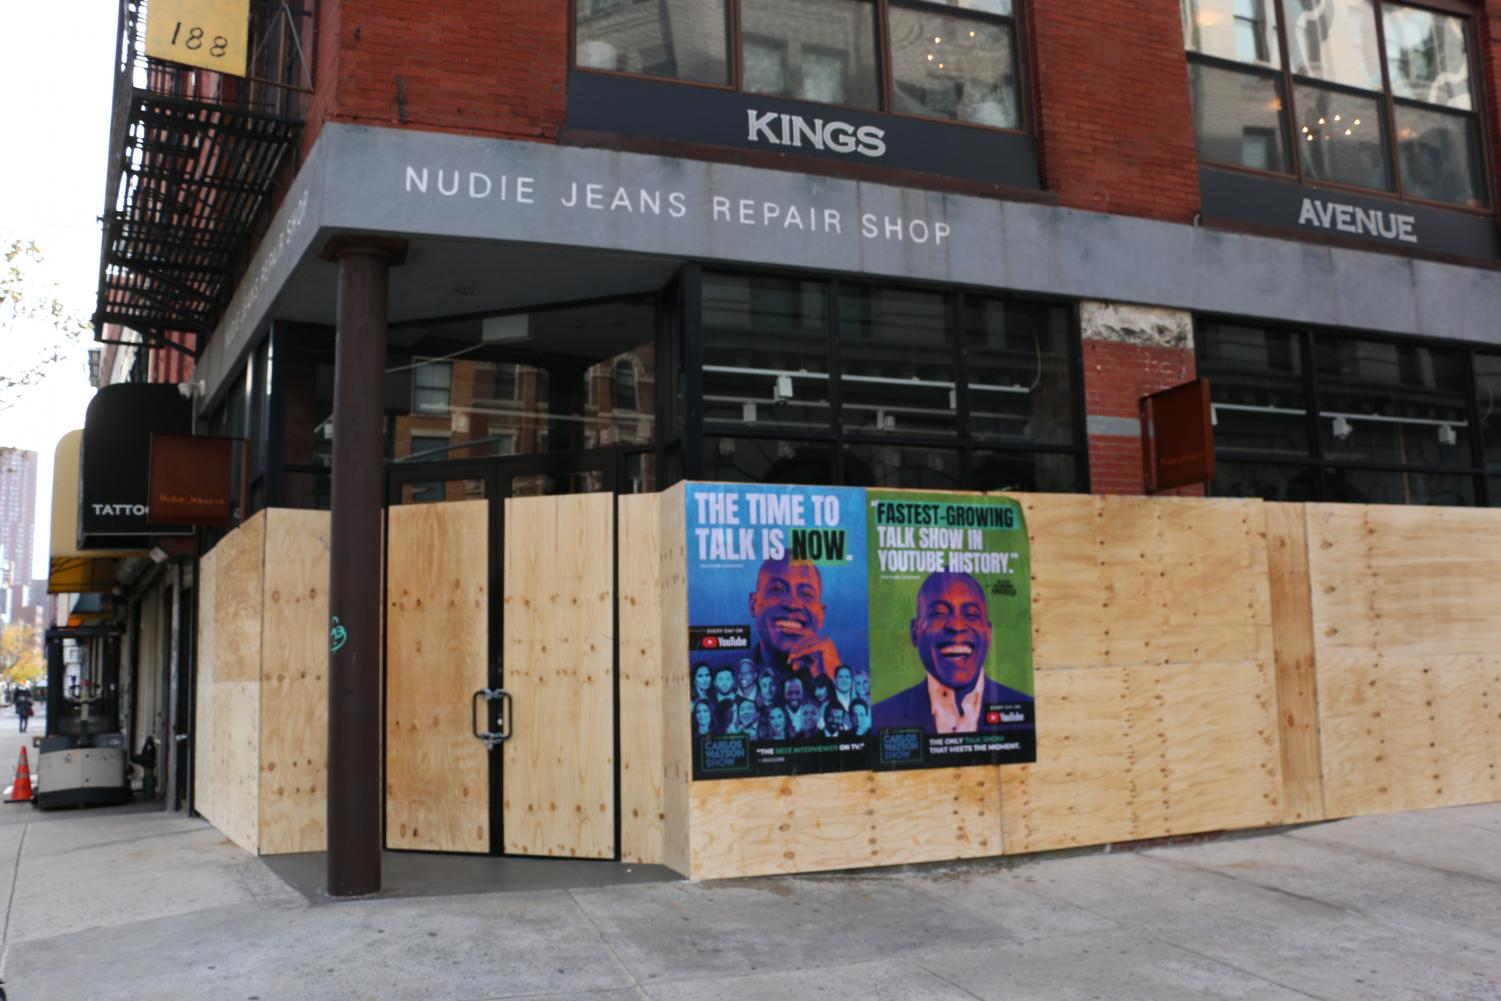 the Nudie Jeans Repair Shop with boards on the windows and posters advertising a Youtube show put up